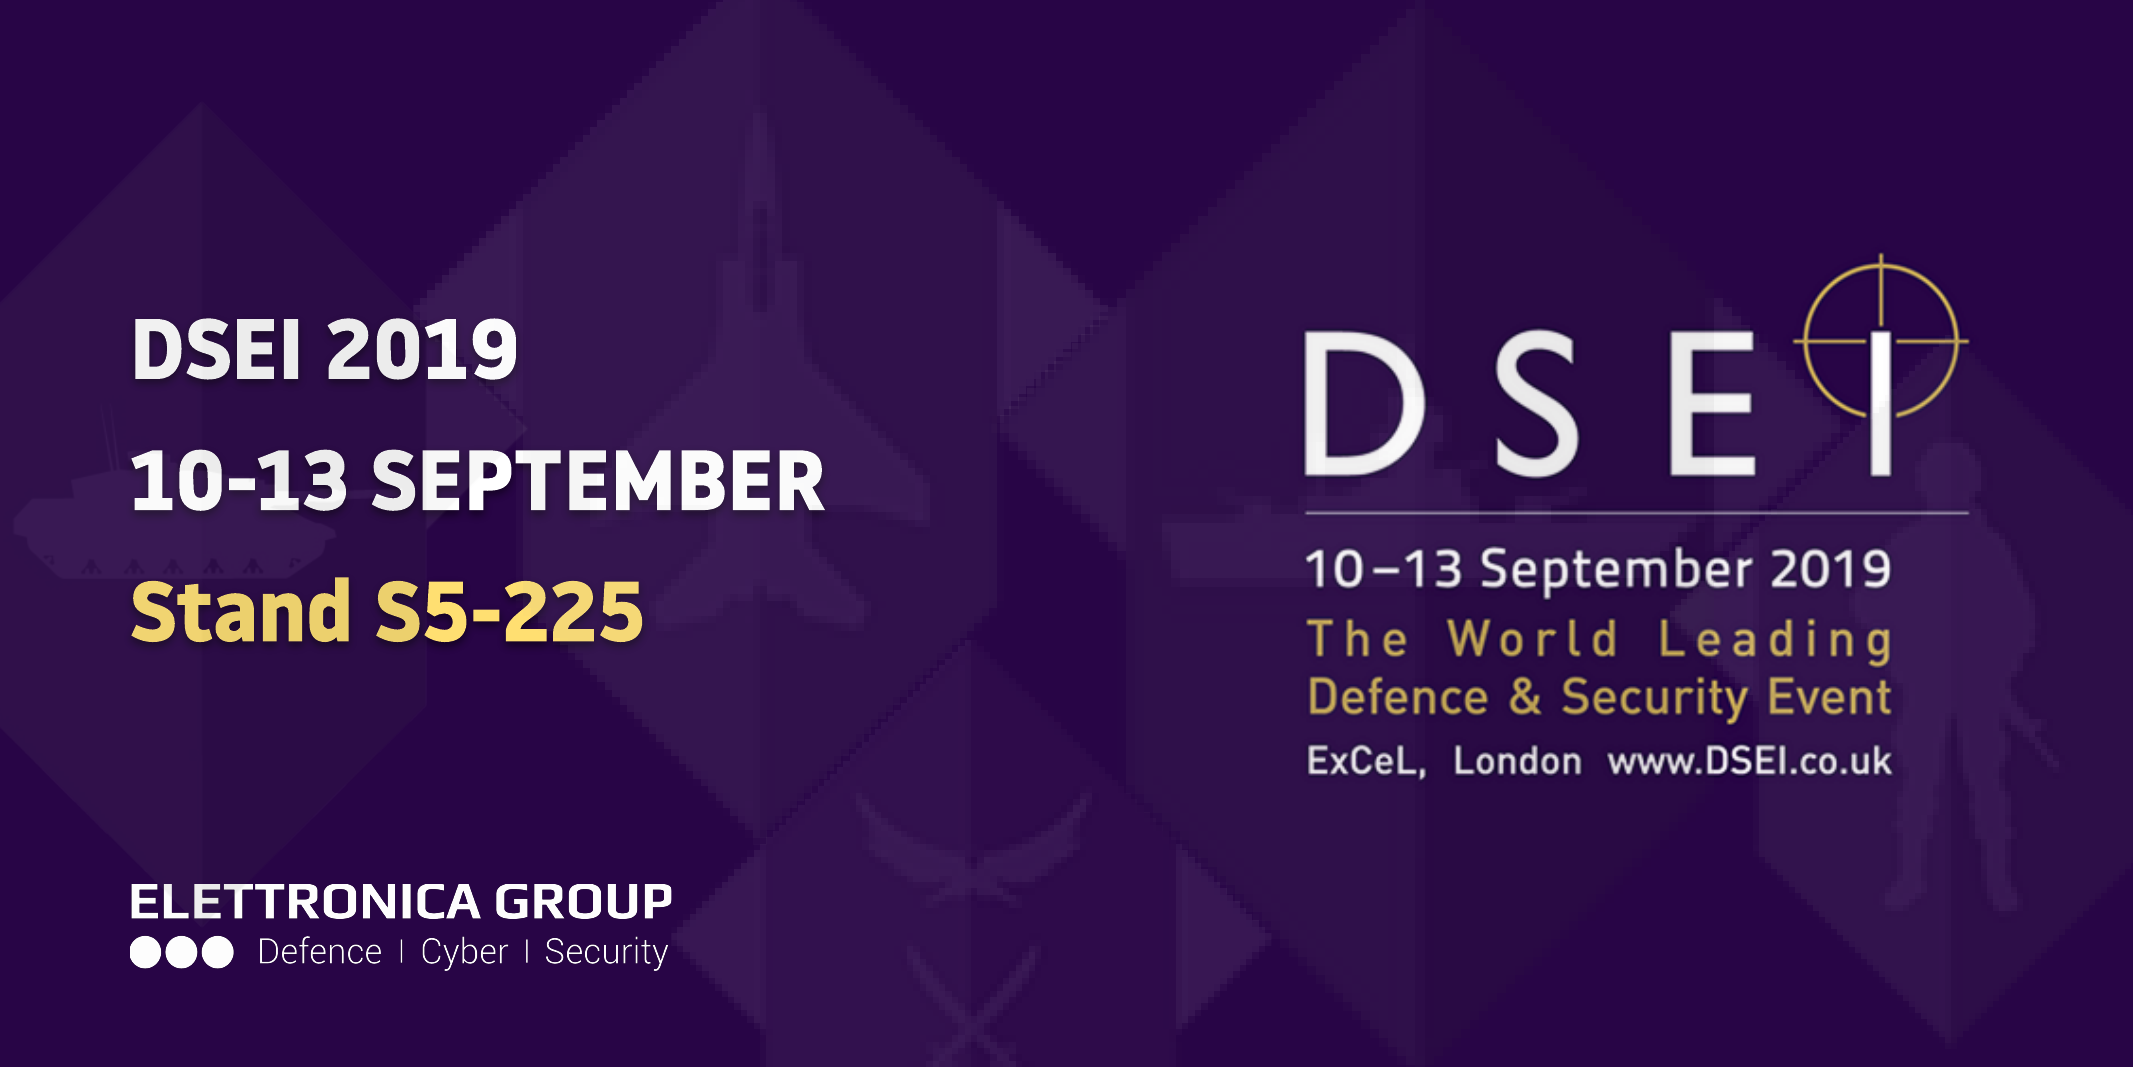 ELETTRONICA GROUP AT DSEI 2019